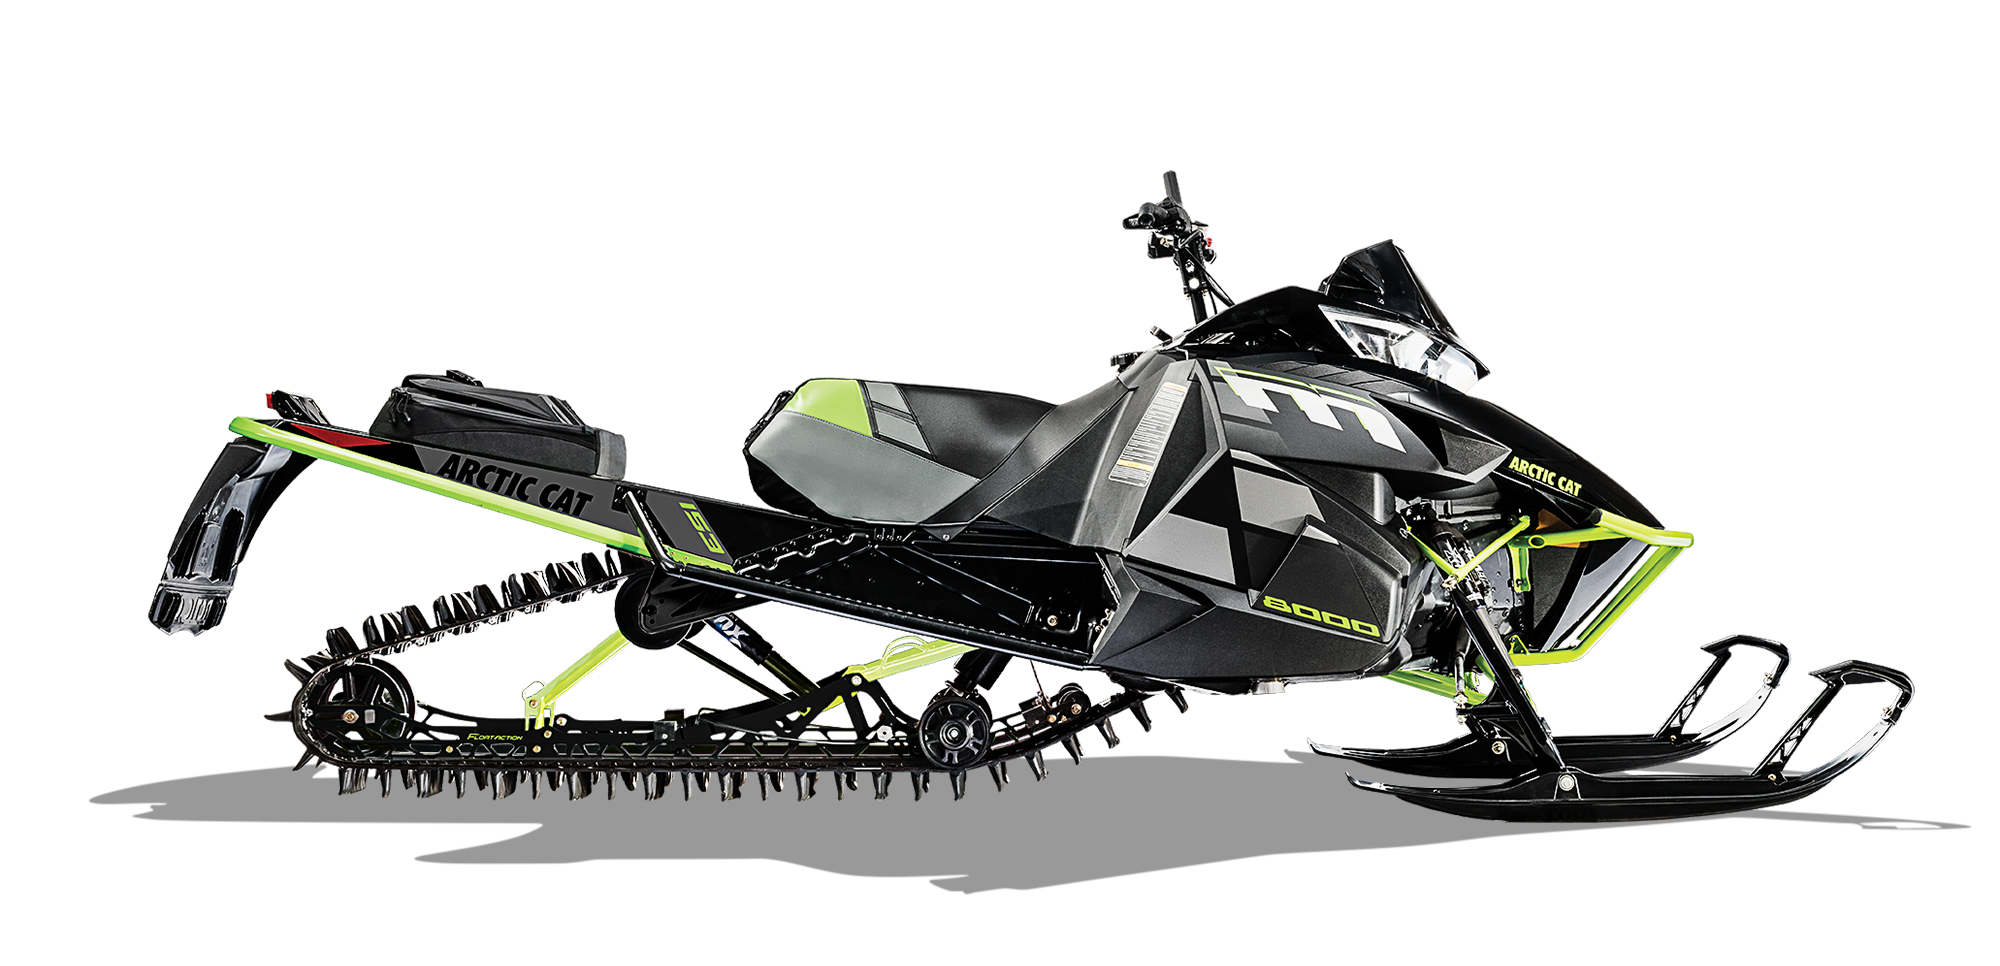 Artic cat snowmobile clipart black and white picture royalty free M 8000 Limited (153) | Arctic Cat picture royalty free